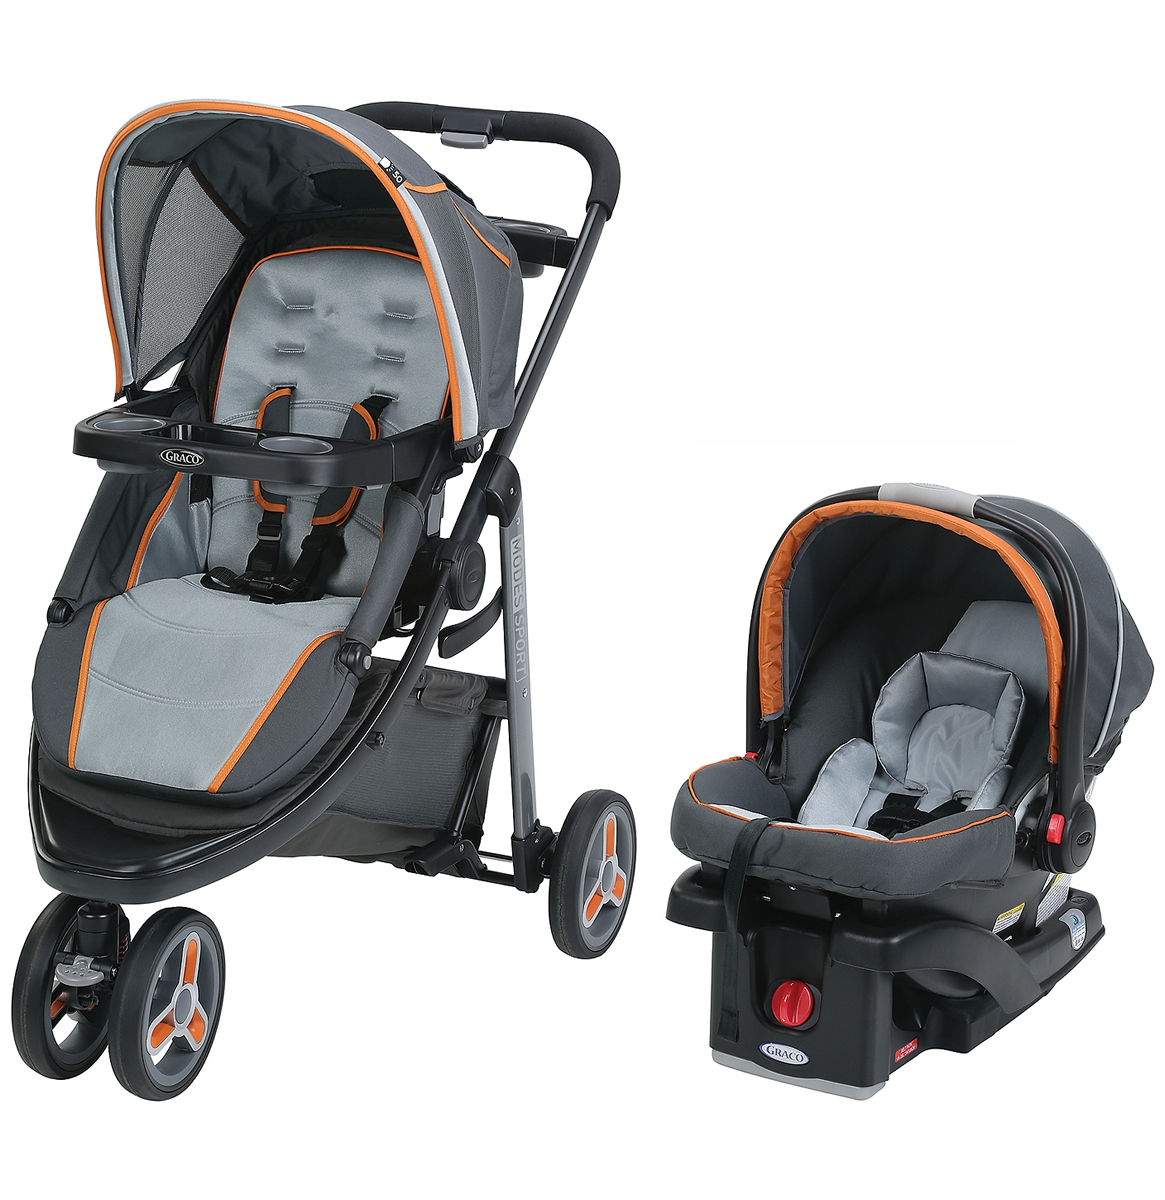 Graco CHILDREN S PRODUCTS 1965236 GRACO BABY MODES SPORT CLICK CONNECT TRAVEL SYSTEM TANGERINE